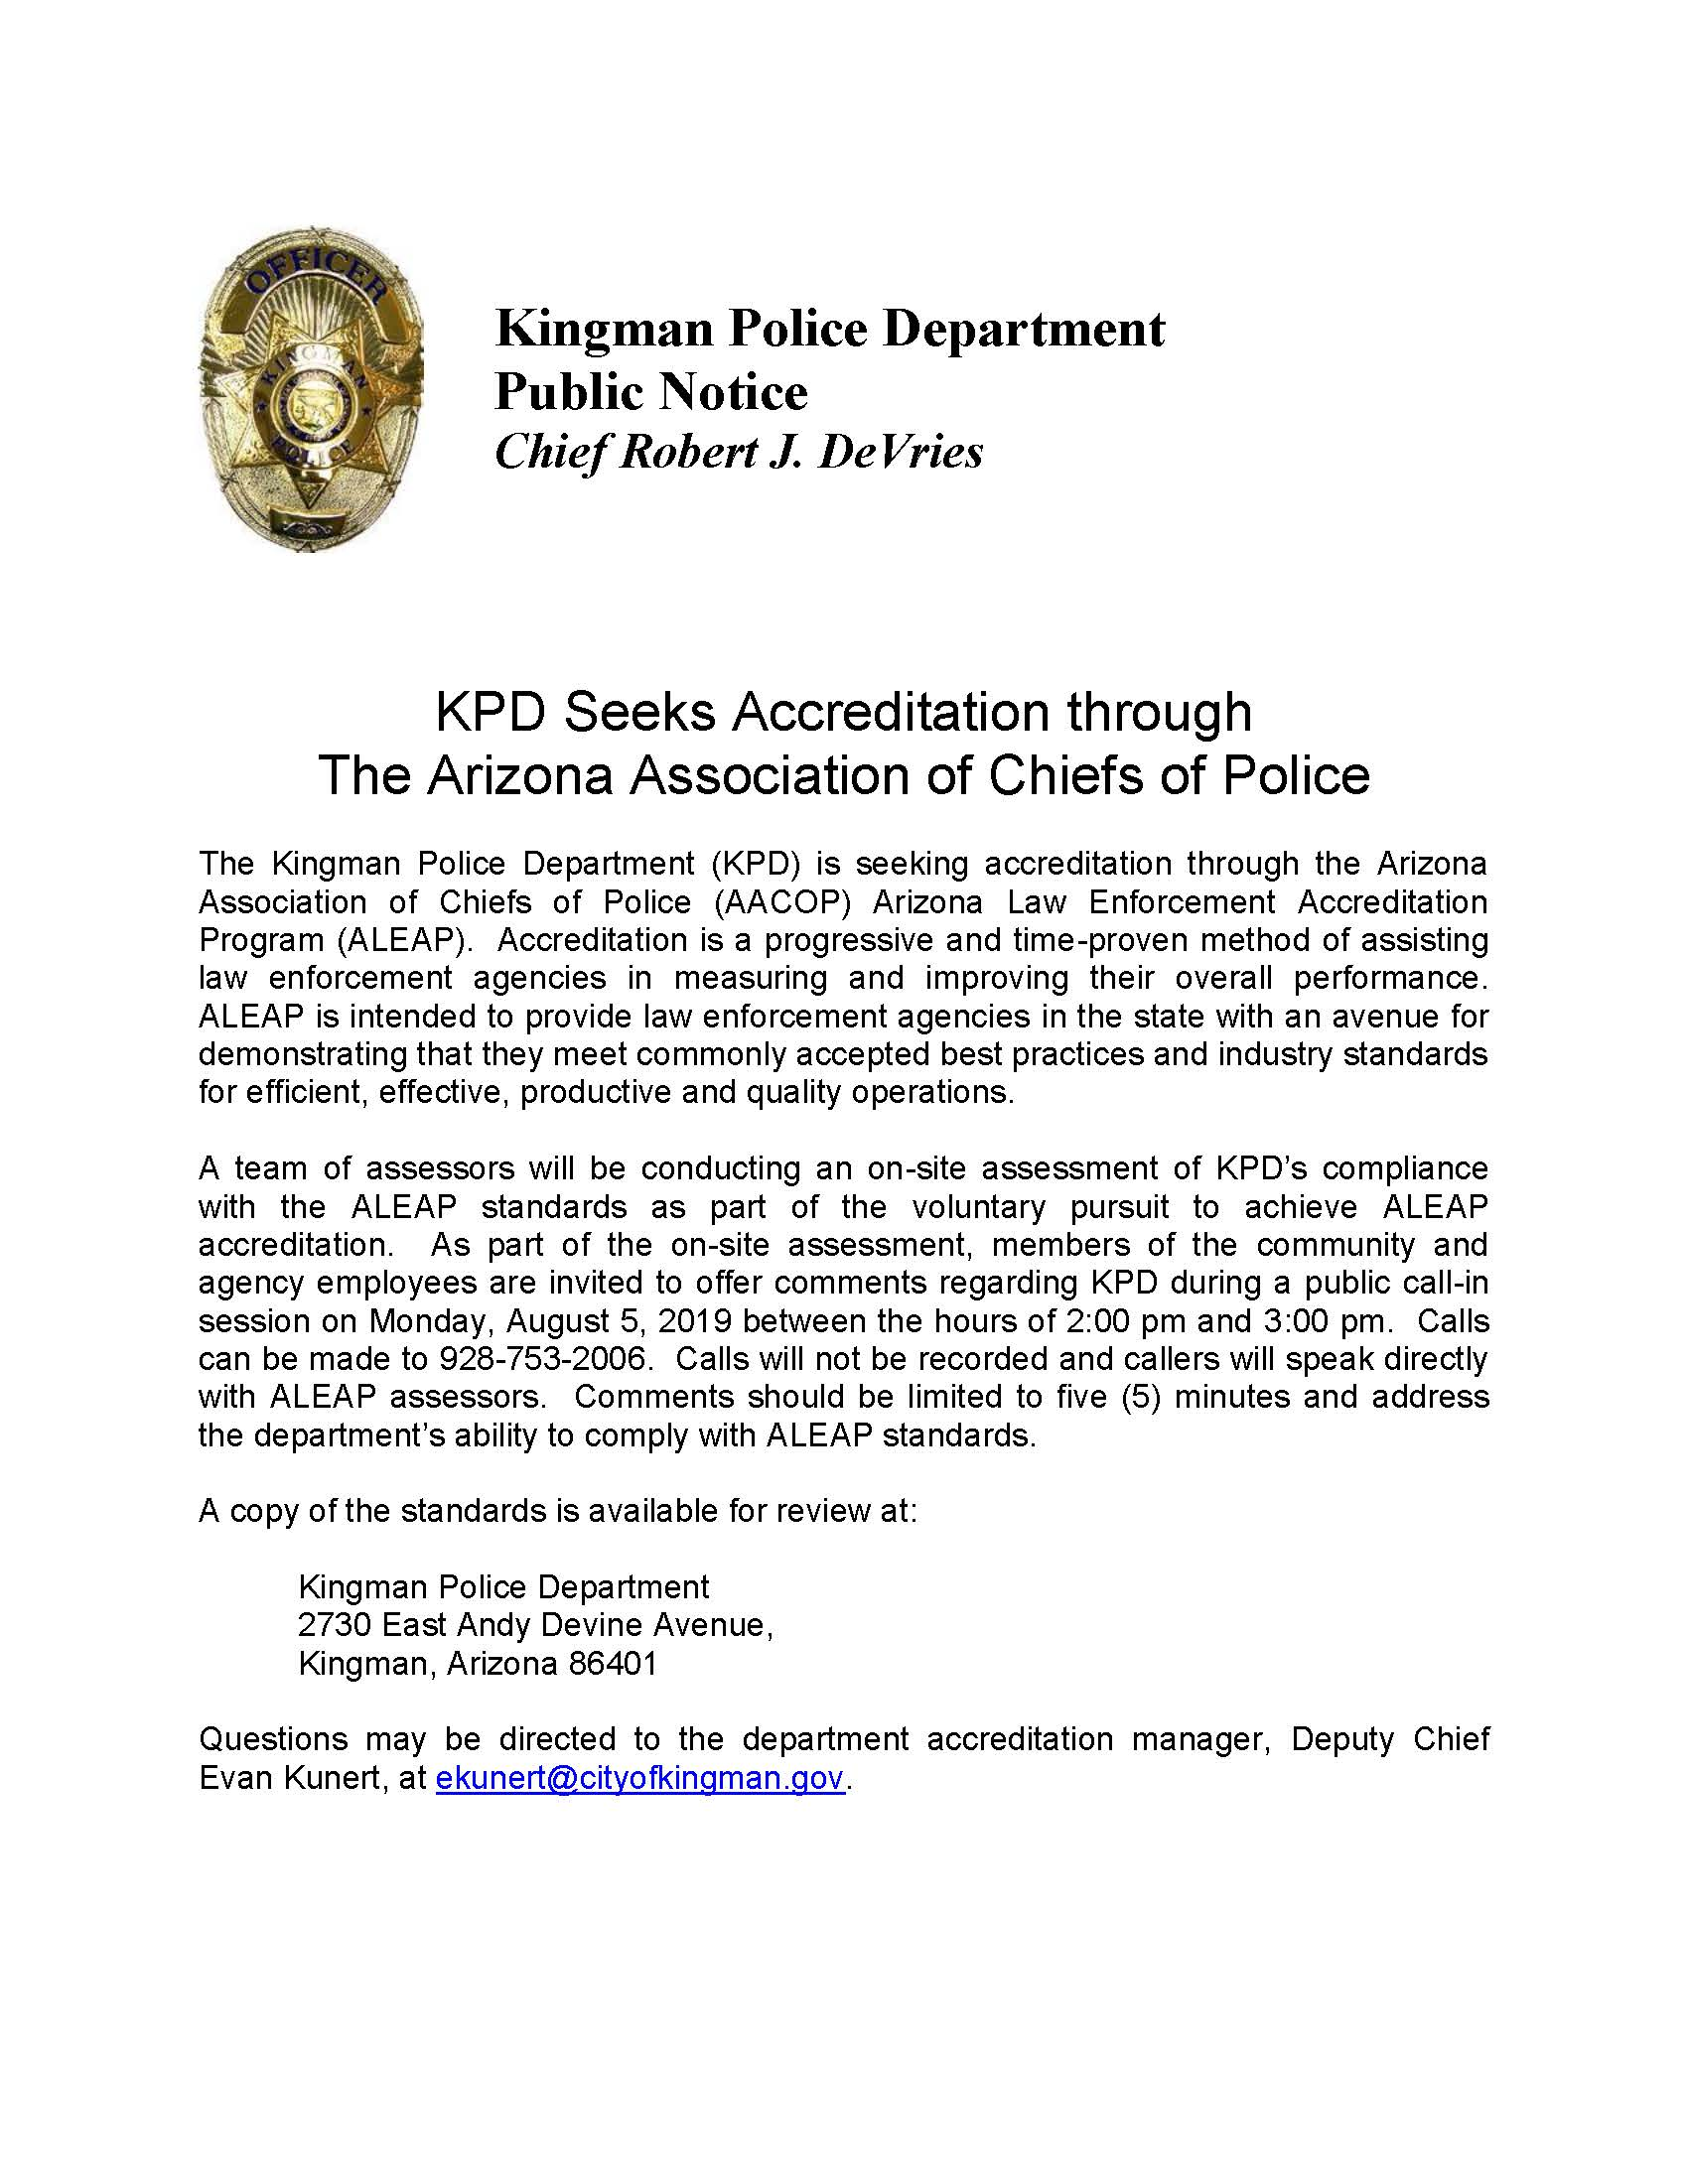 KPD Seeks Accreditation through The Arizona Association of Chiefs of Police